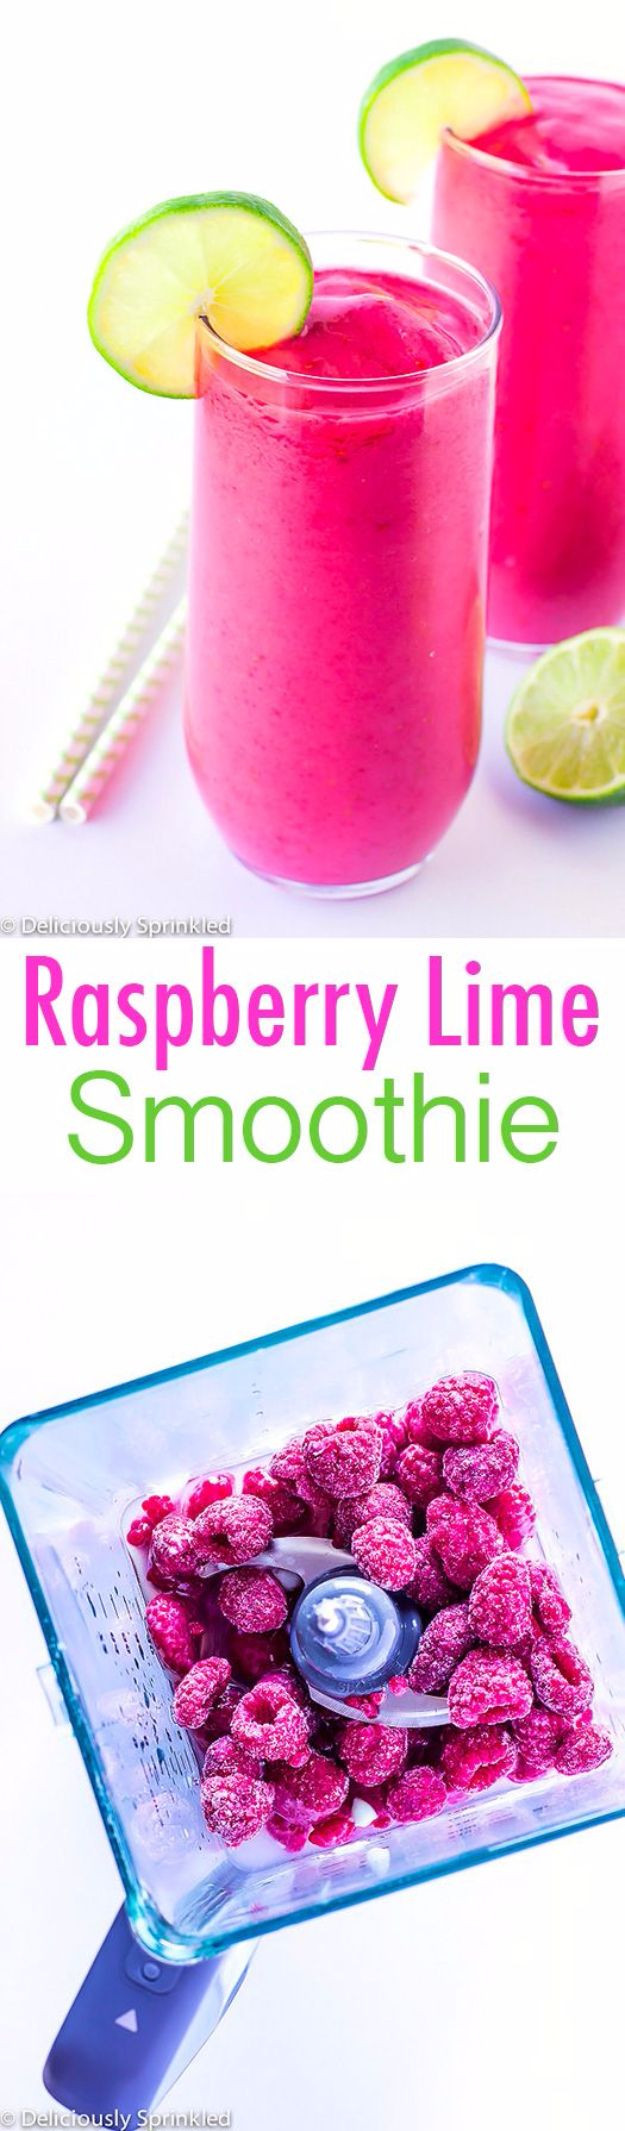 Healthy Smoothies After Workout  Best 25 Morning energy smoothie ideas on Pinterest